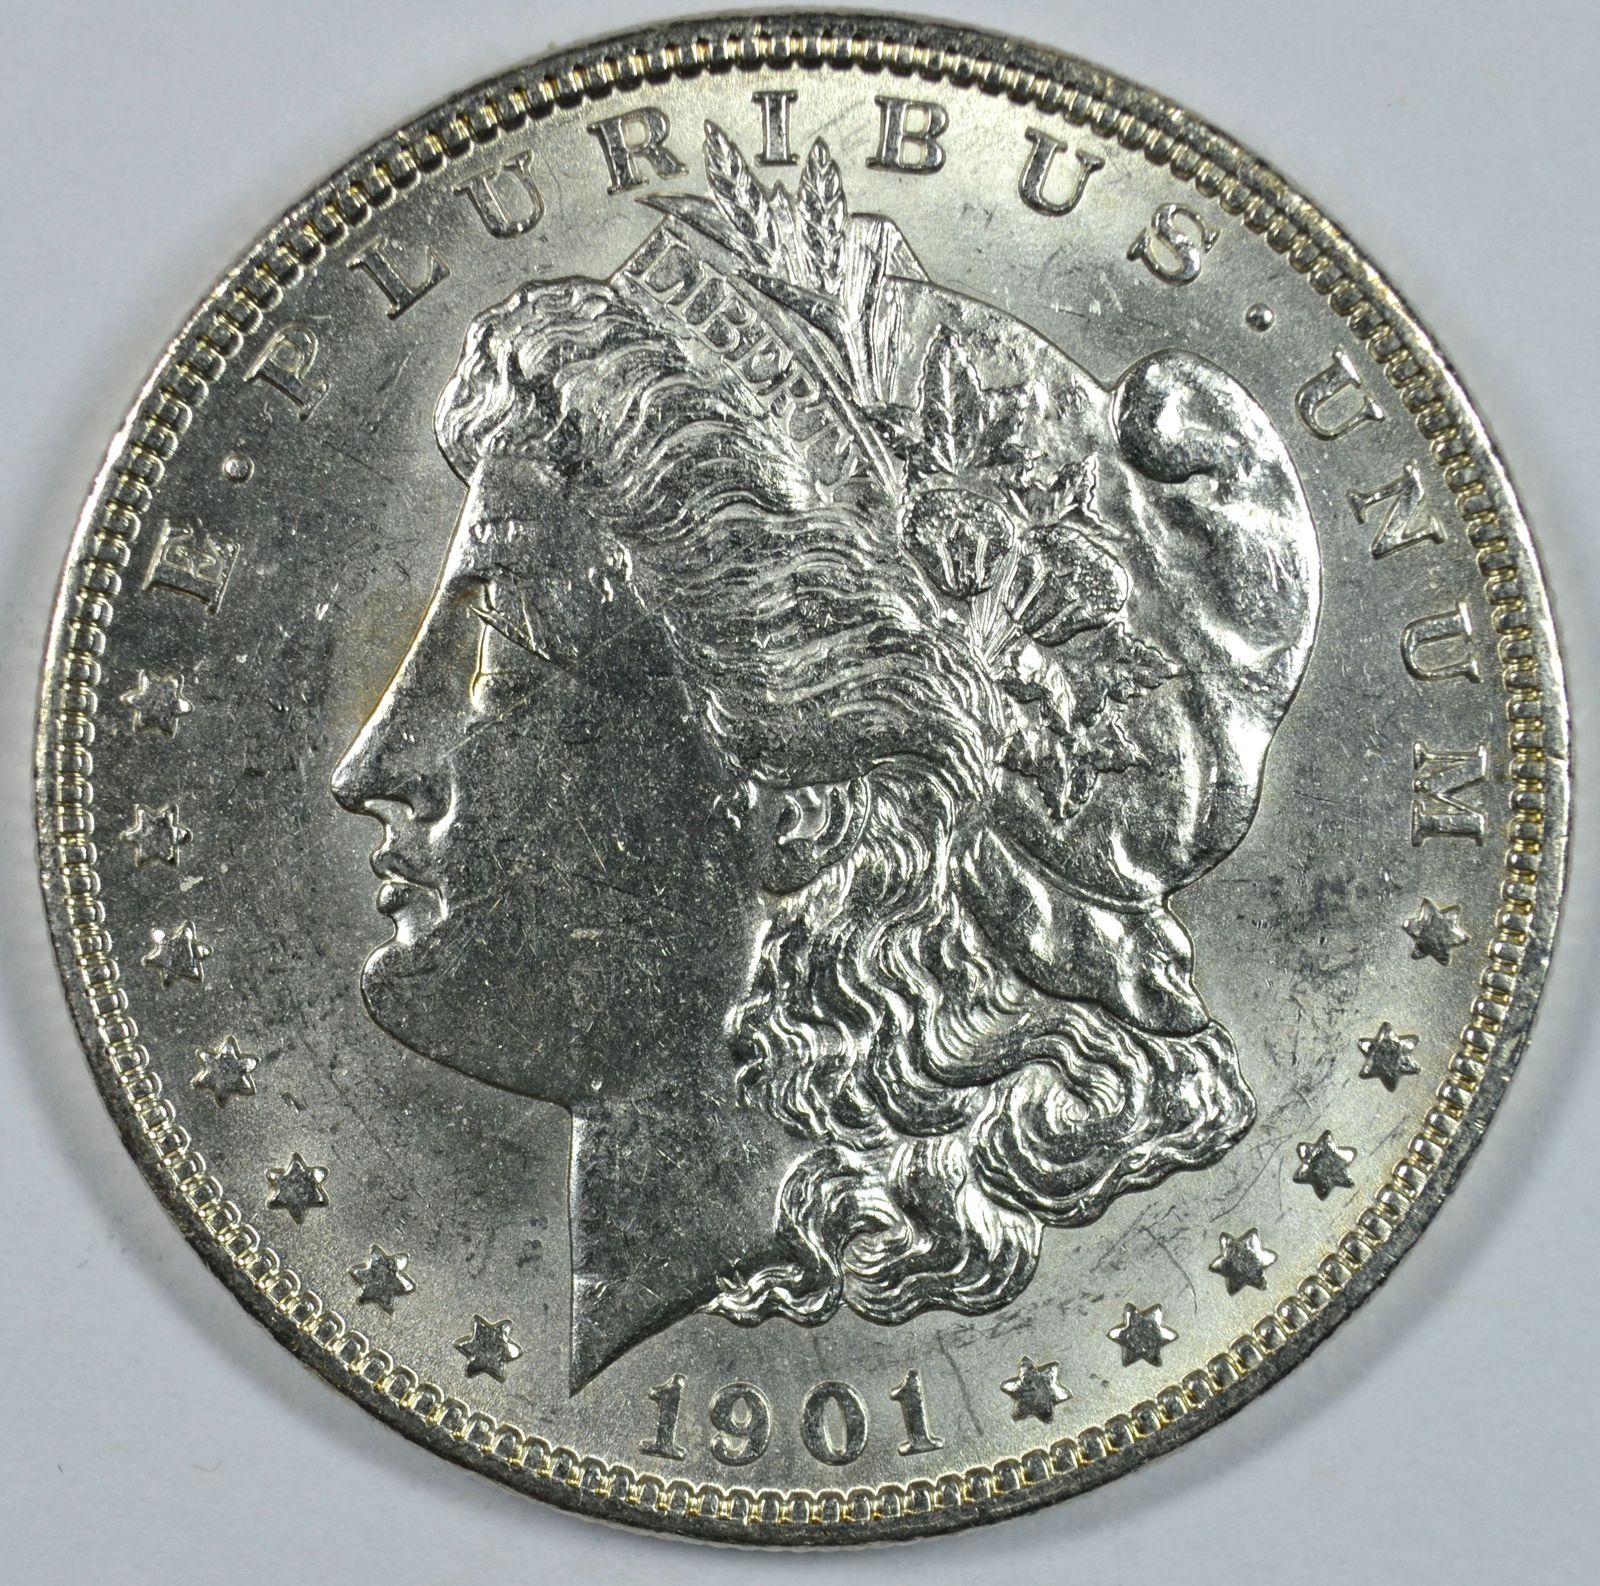 Primary image for 1901 O Morgan silver dollar AU details